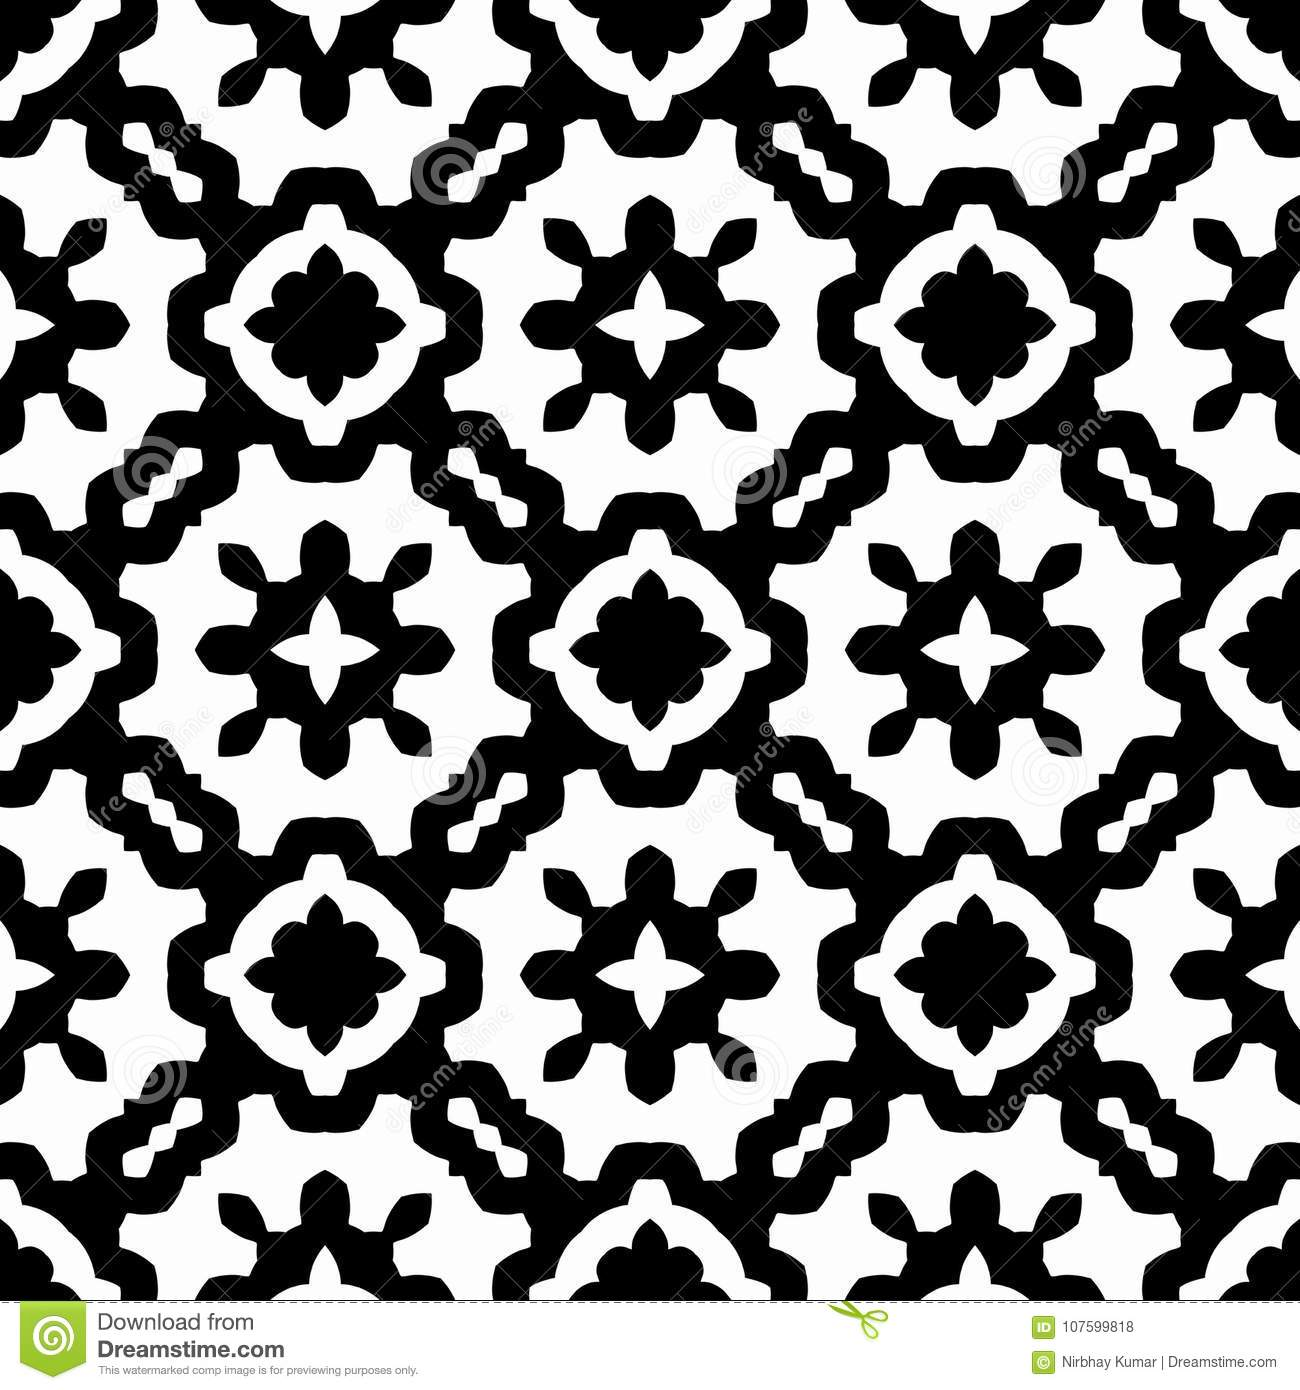 Simple Wallpaper Home Screen Black And White - pattern-website-background-wallpaper-screen-sever-book-cover-printing-laser-cutting-designs-vector-black-white-107599818  Pic_757279.jpg